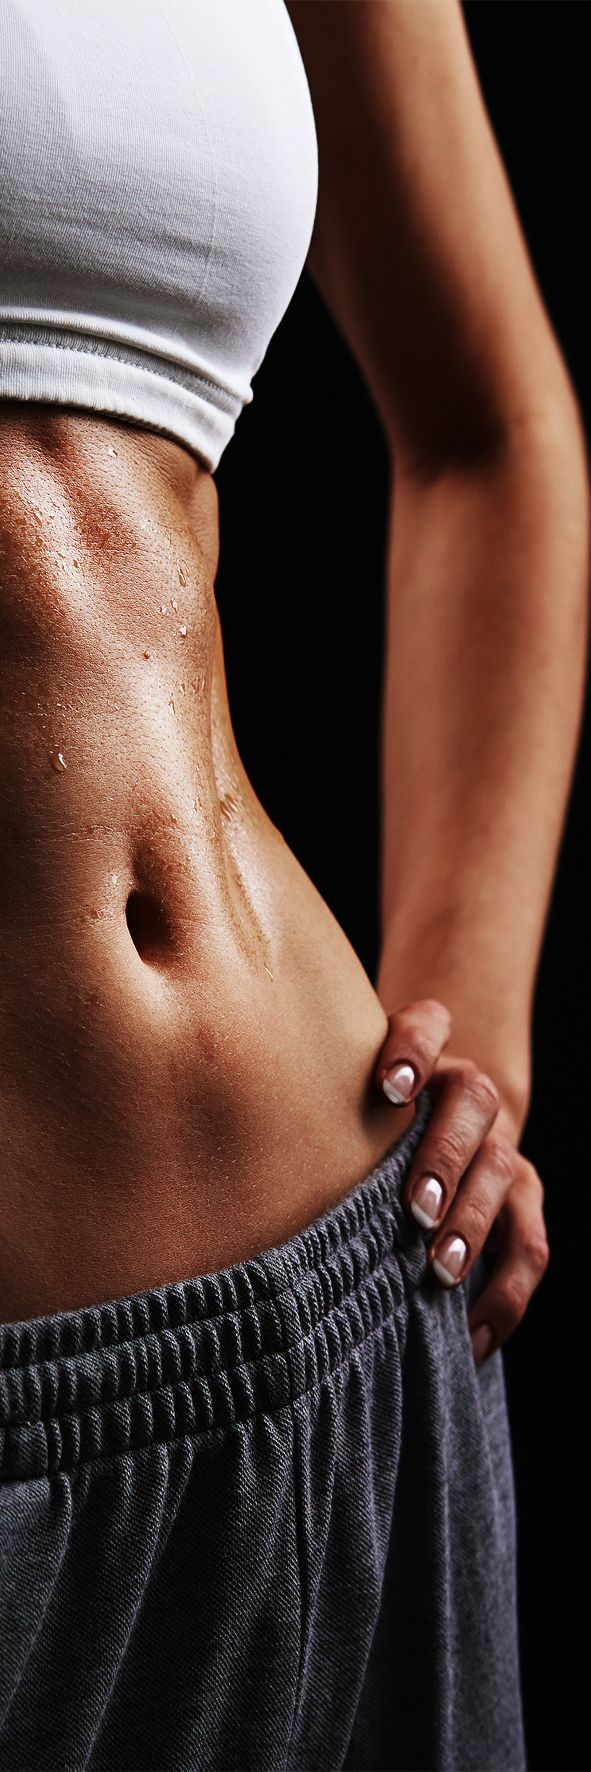 #1 Top Tip For Better Abs! GET FROM FAT TO FLAT MUCH FASTER! #abs #sixpack #getsixpack #abworkout #abexercise